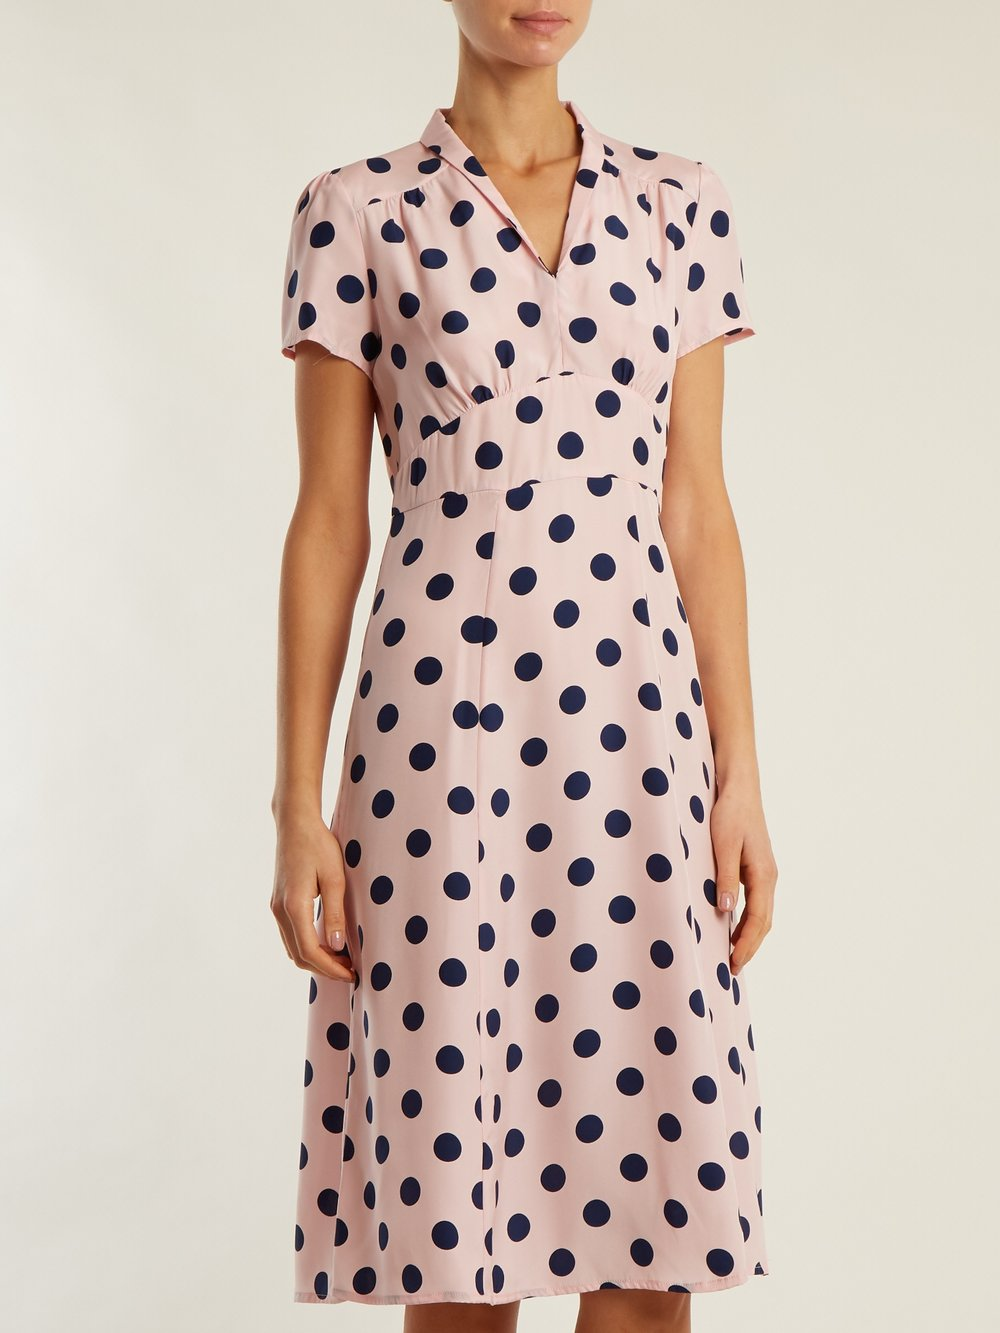 LARGE NAVY & PINK POLKA DOTS - SHOP NOW